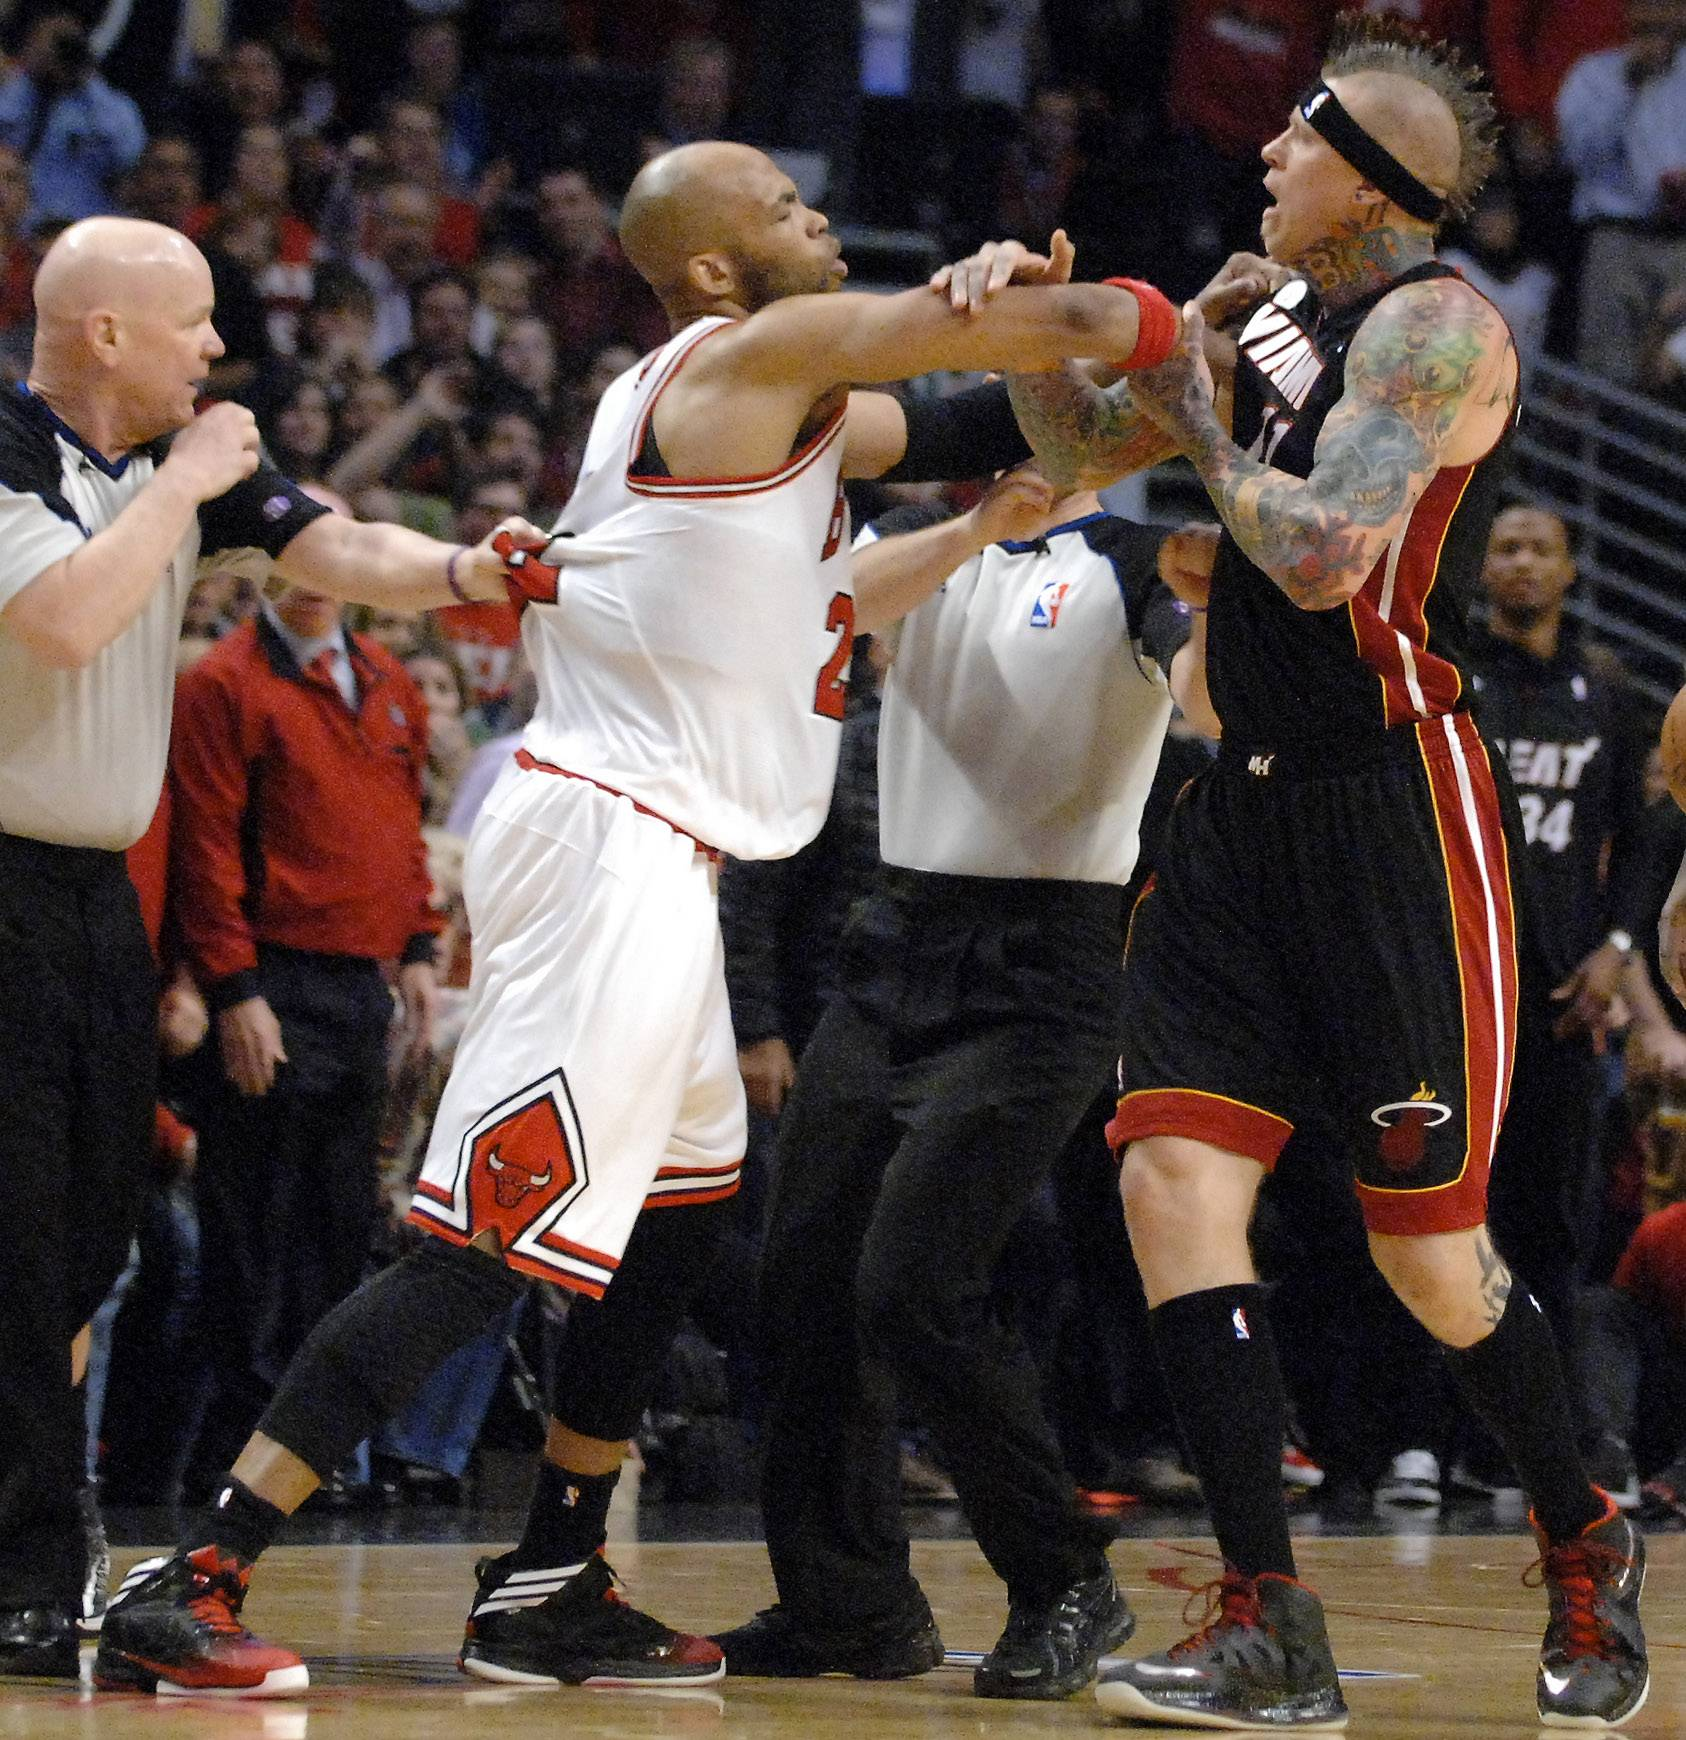 Chicago Bulls power forward Taj Gibson (22) and Miami Heat power forward Chris Andersen (11) get in a shoving match following Nazr Mohammed foul on LeBron James during Game 3 of an NBA basketball playoffs Eastern Conference semifinal on Friday, May 10, 2013, in Chicago. The heat won 104-94.